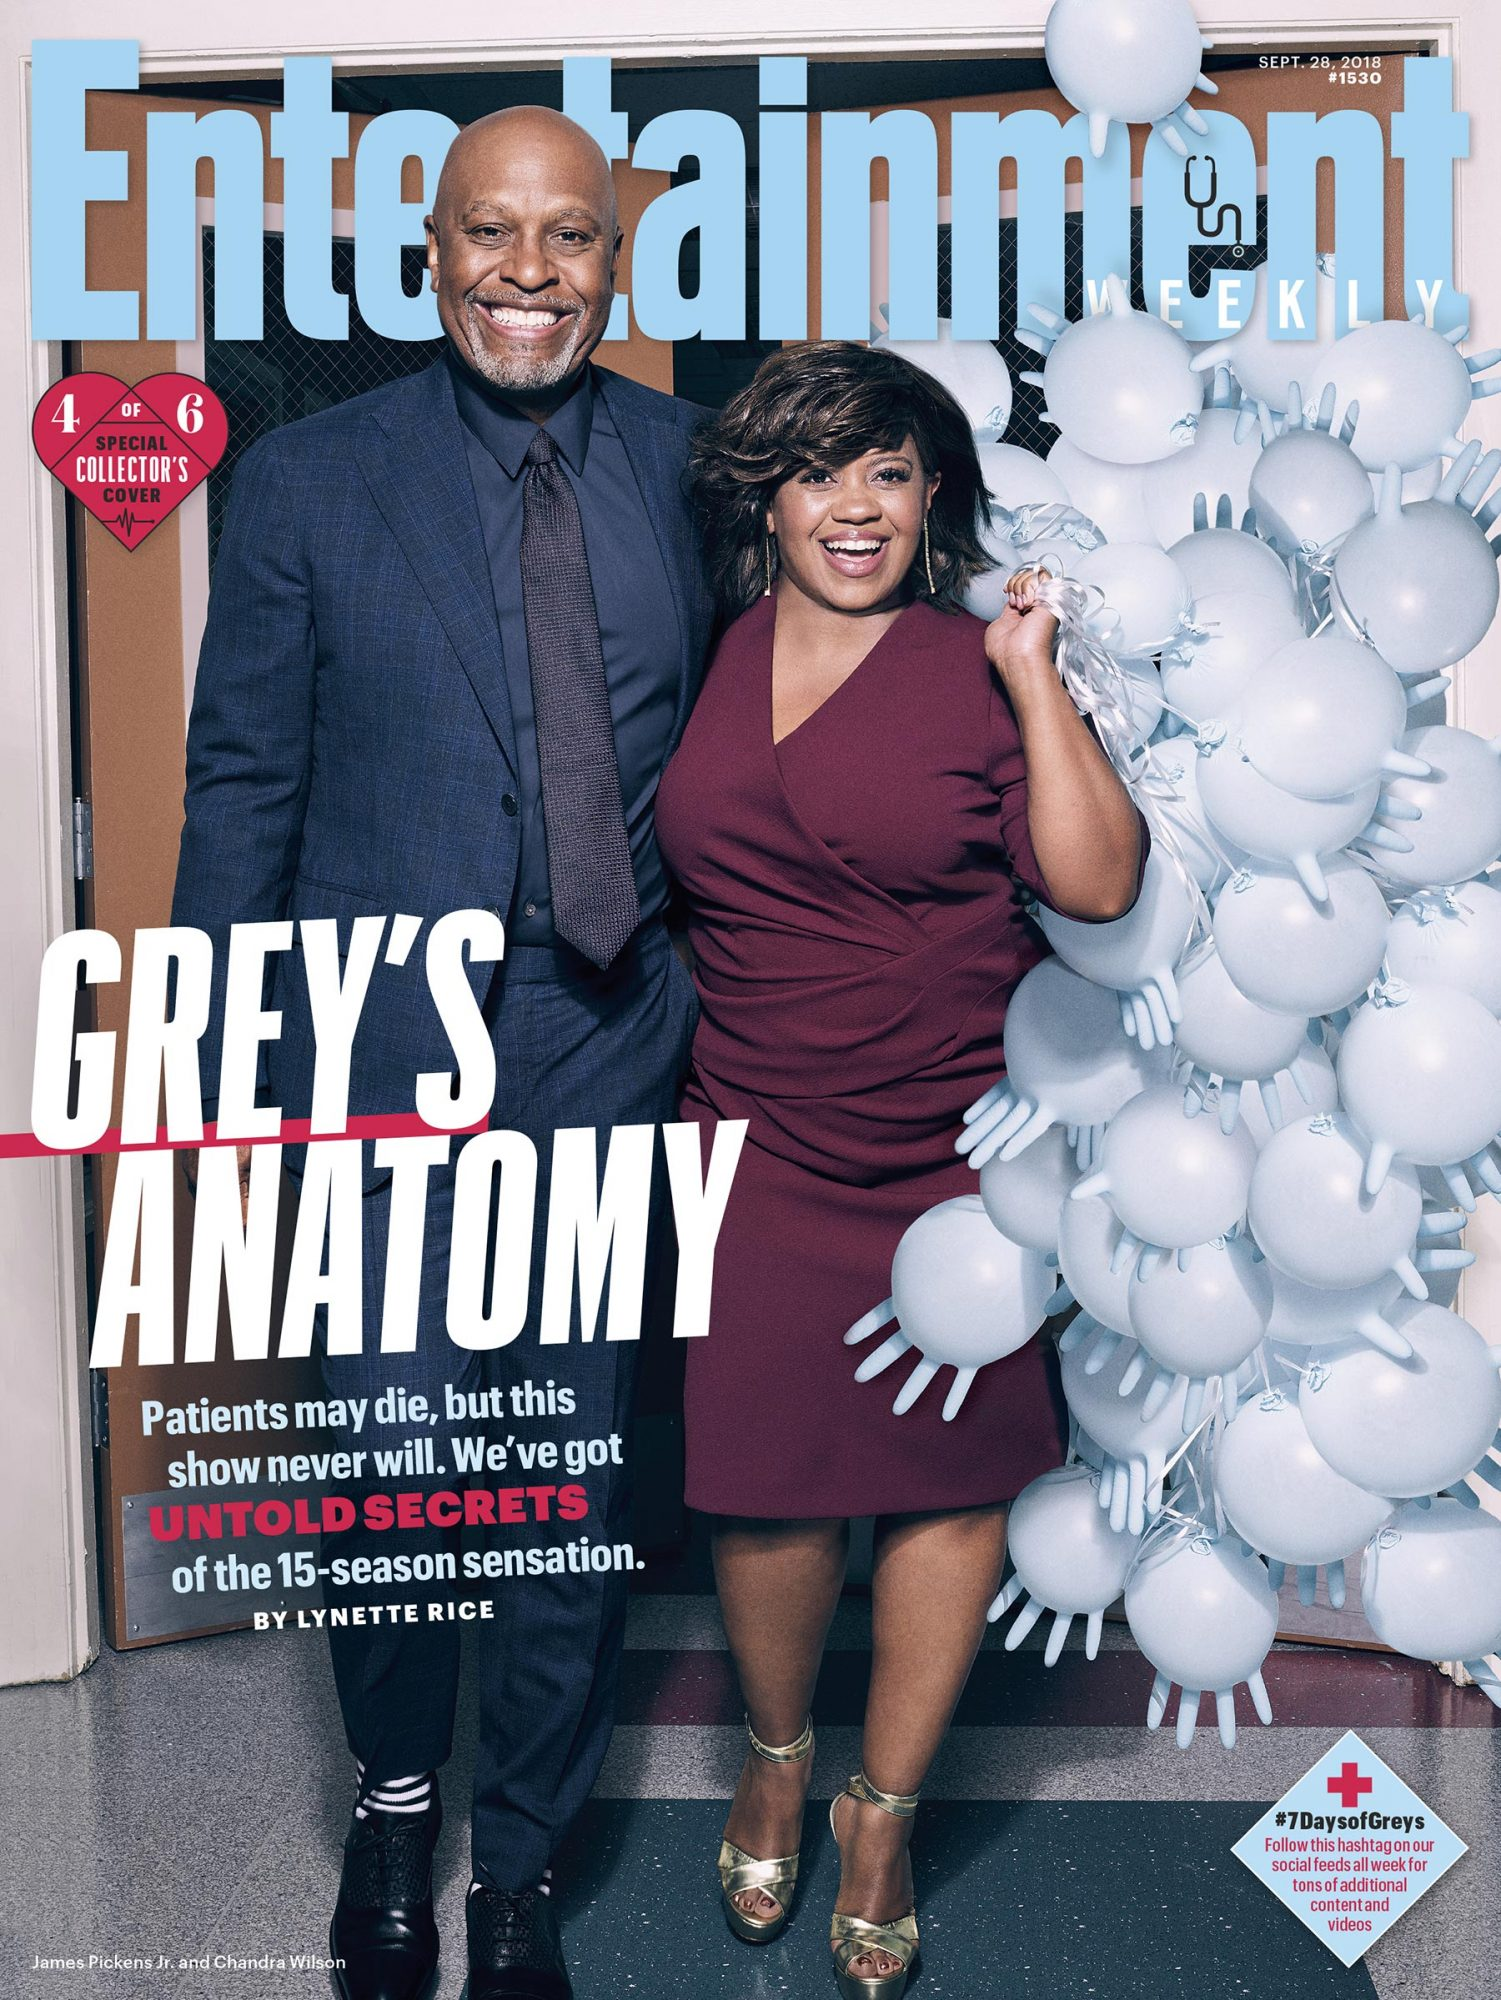 Collector's Cover #4: James Pickens Jr. (Dr. Richard Webber) and Chandra Wilson (Dr. Miranda Bailey)